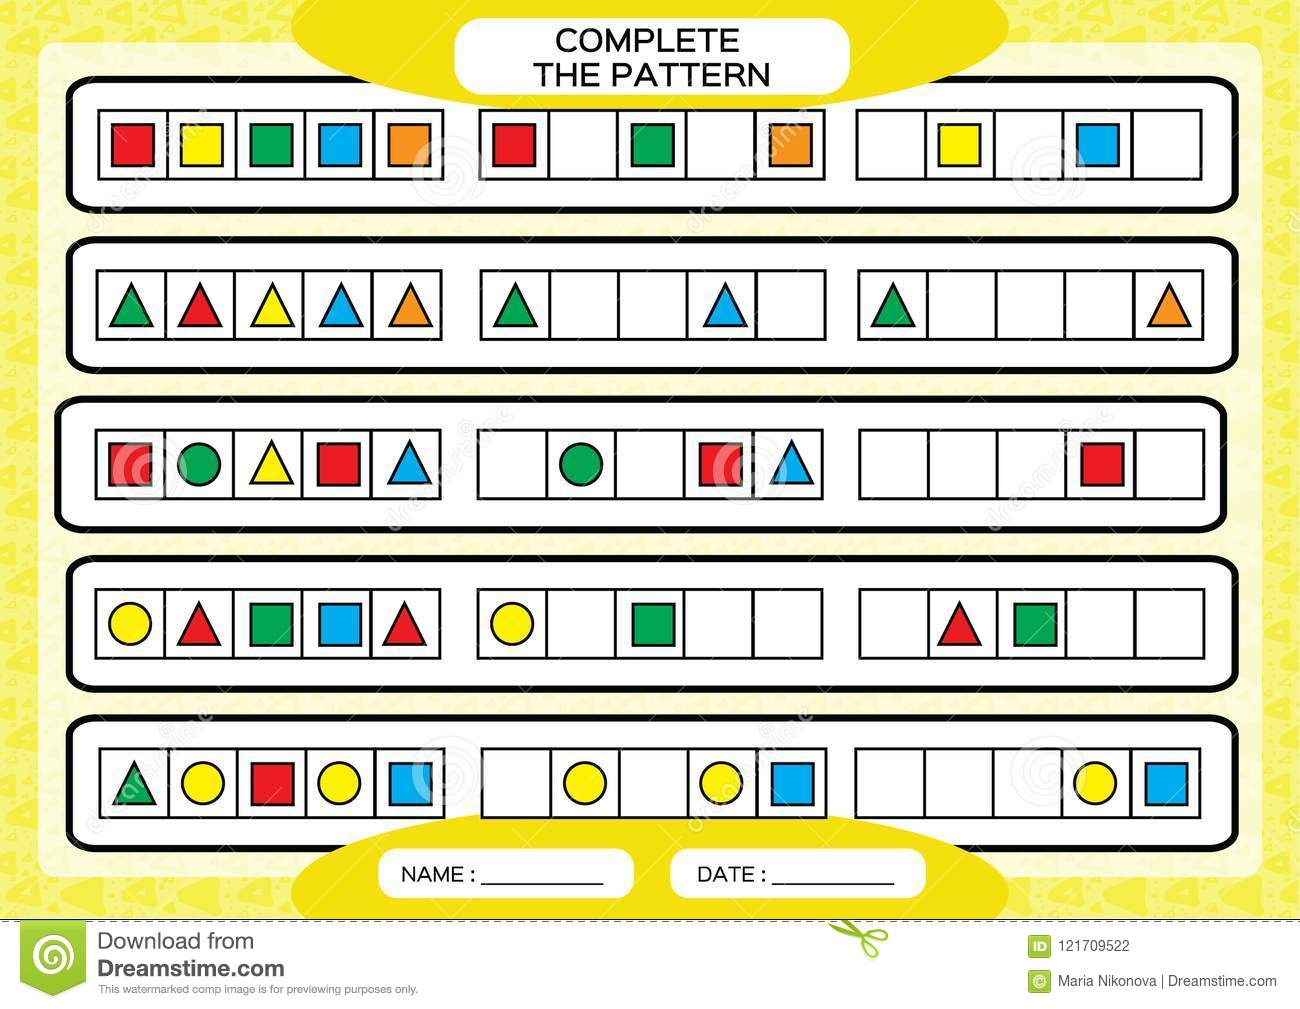 Complete Simple Repeating Patterns Worksheet For